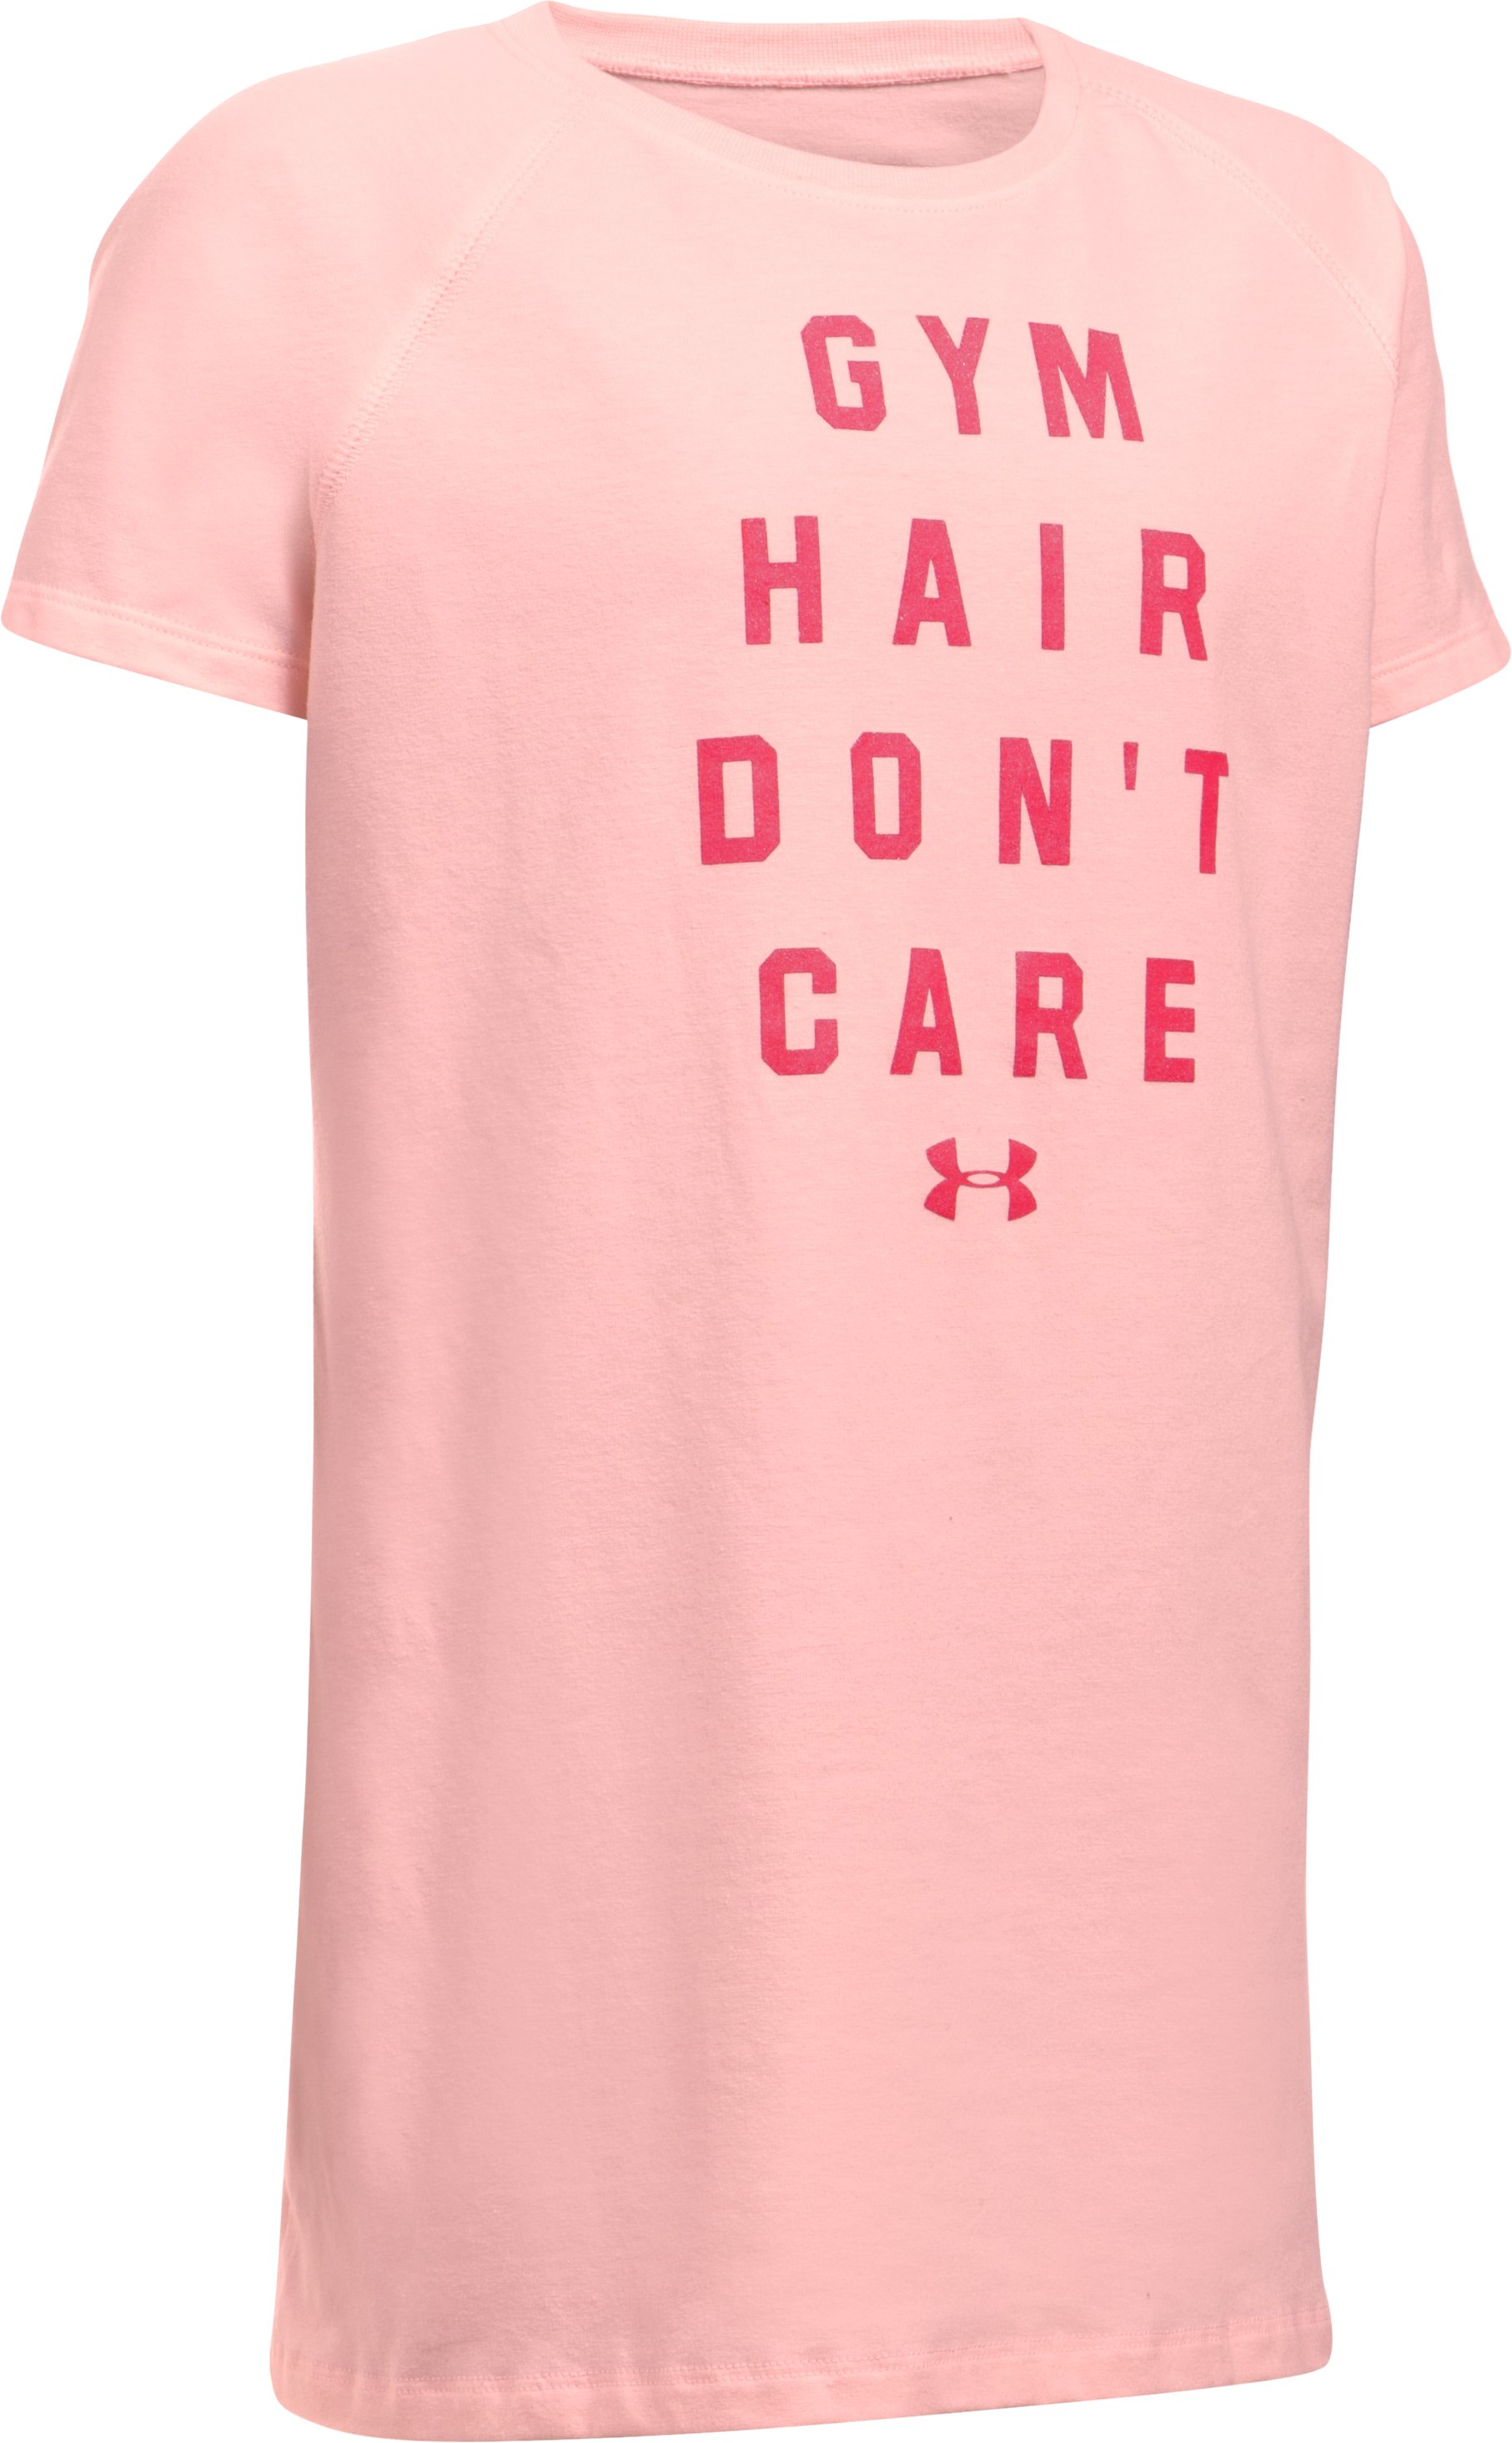 Girls' UA Gym Hair Don't Care T-Shirt, BALLET PINK, undefined